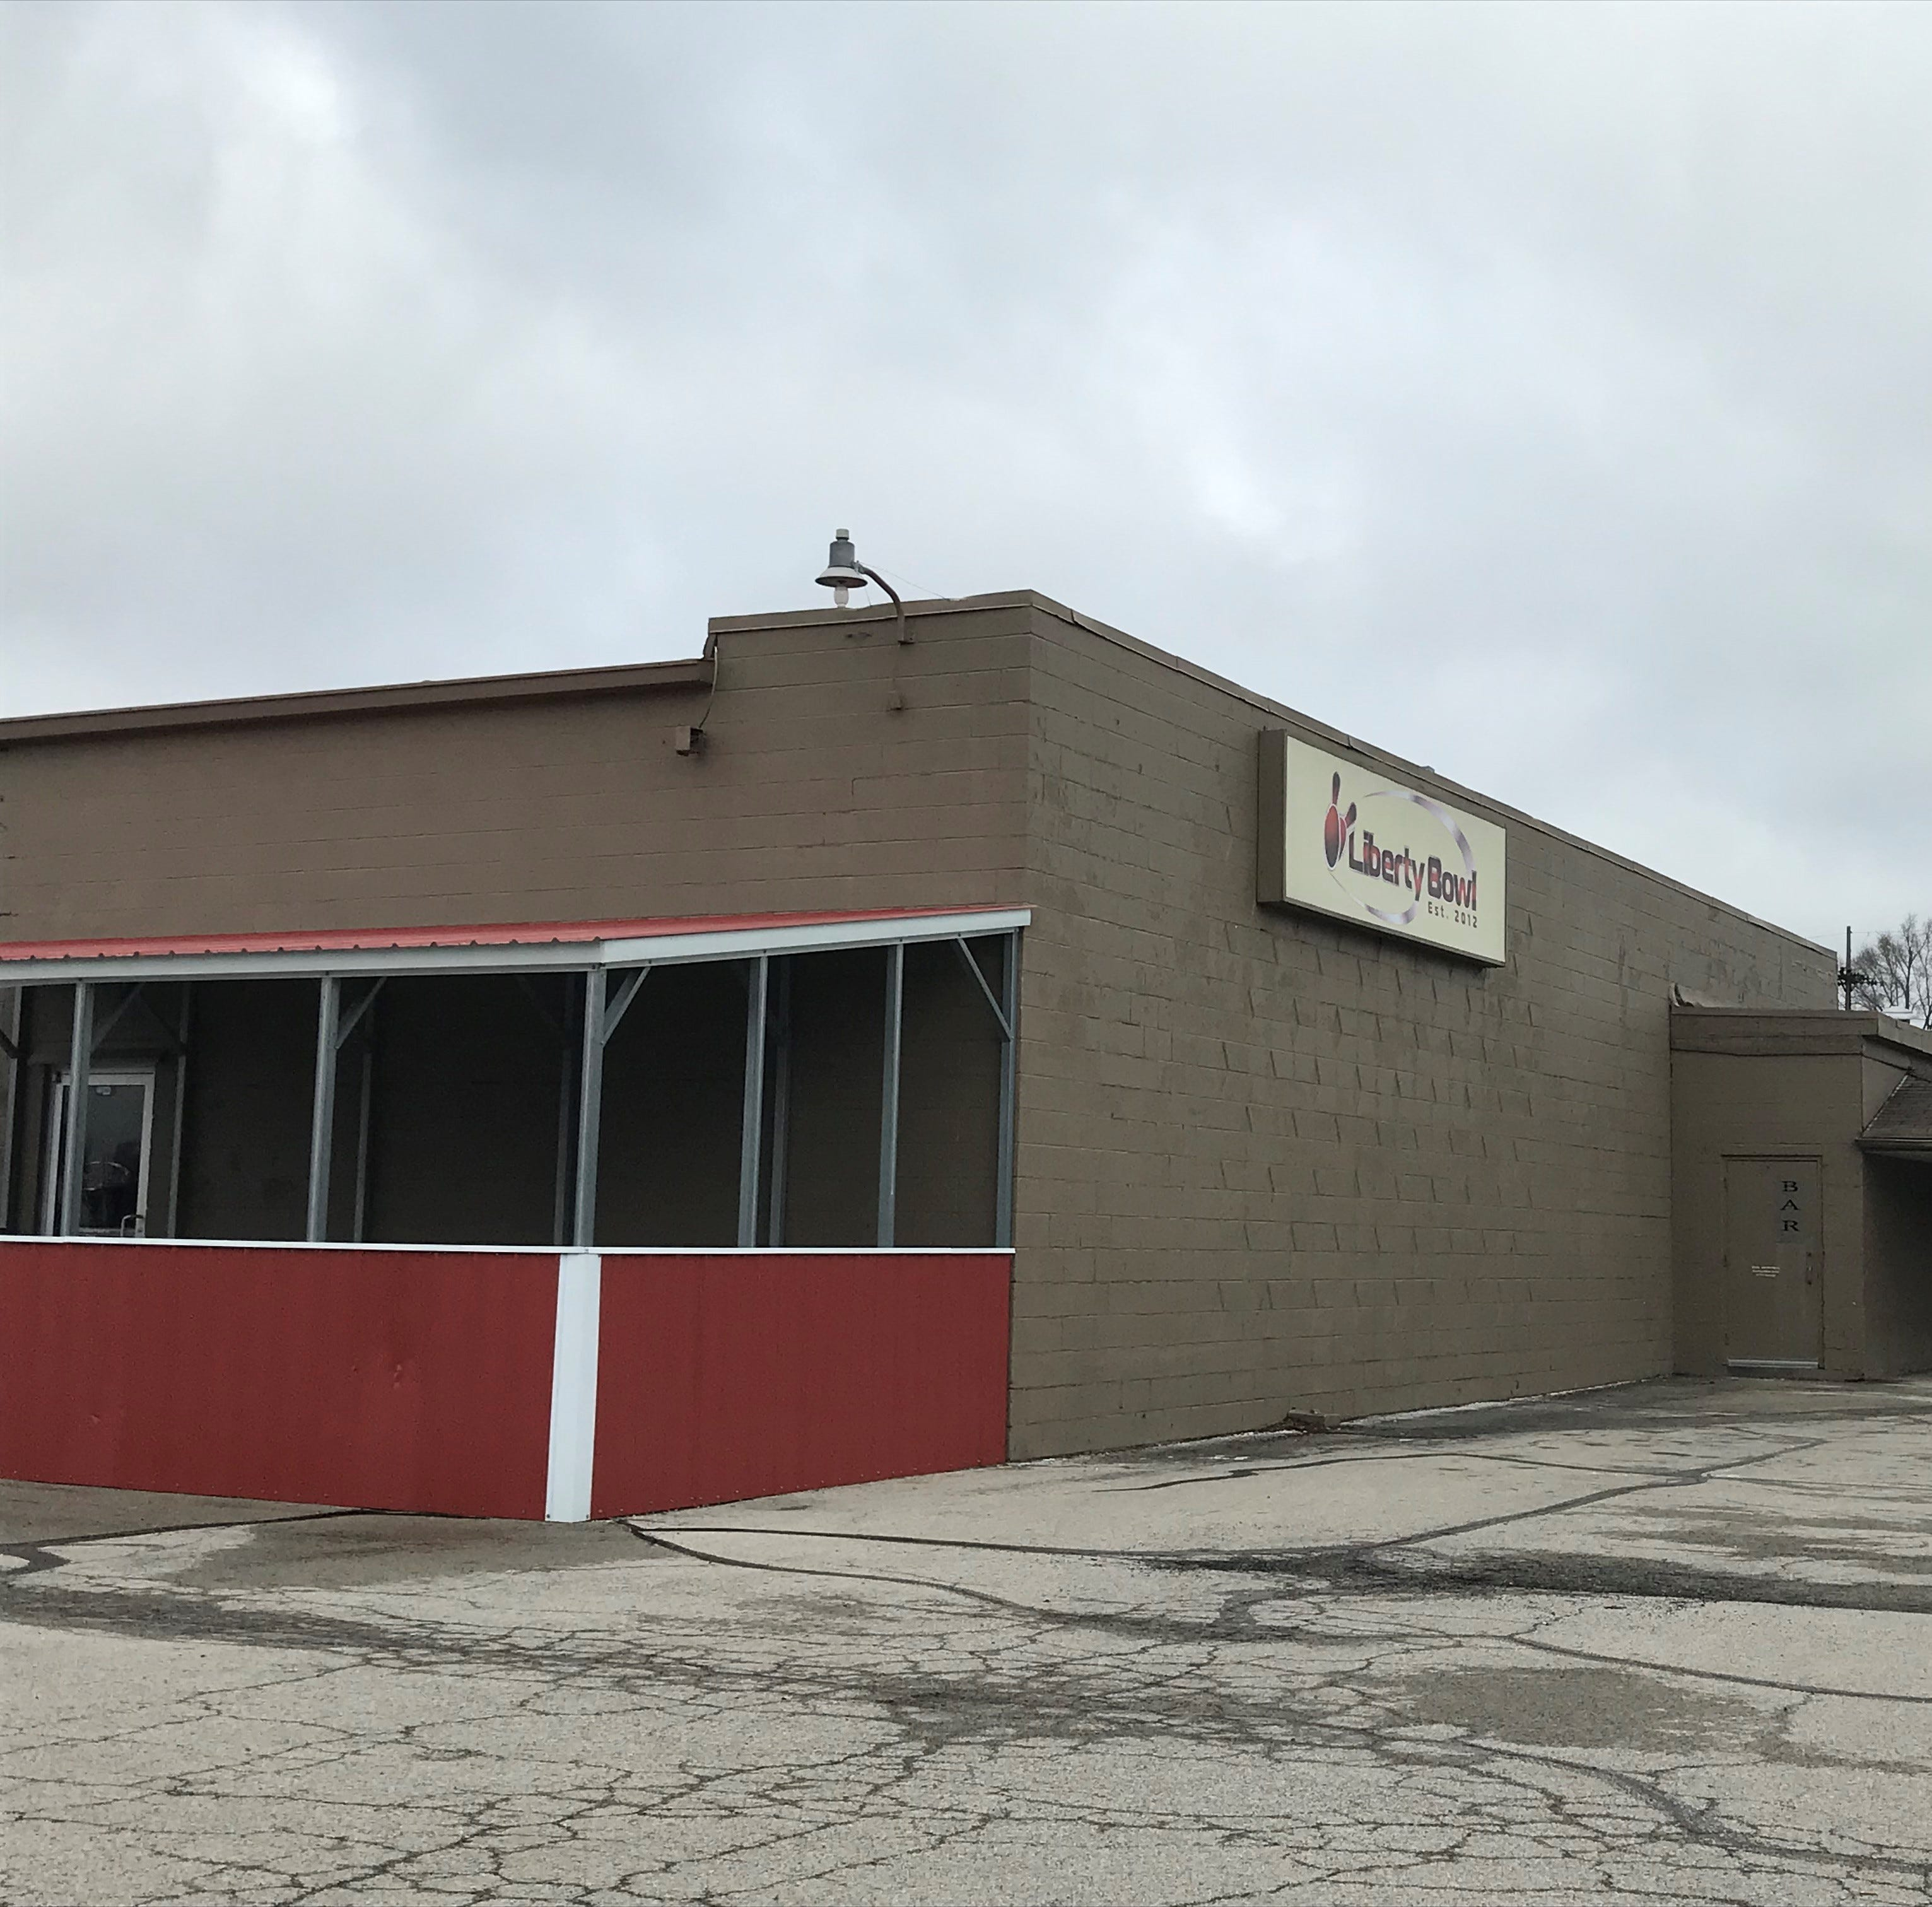 Longtime Muncie bowling alley Liberty Bowl has closed, property up for sale